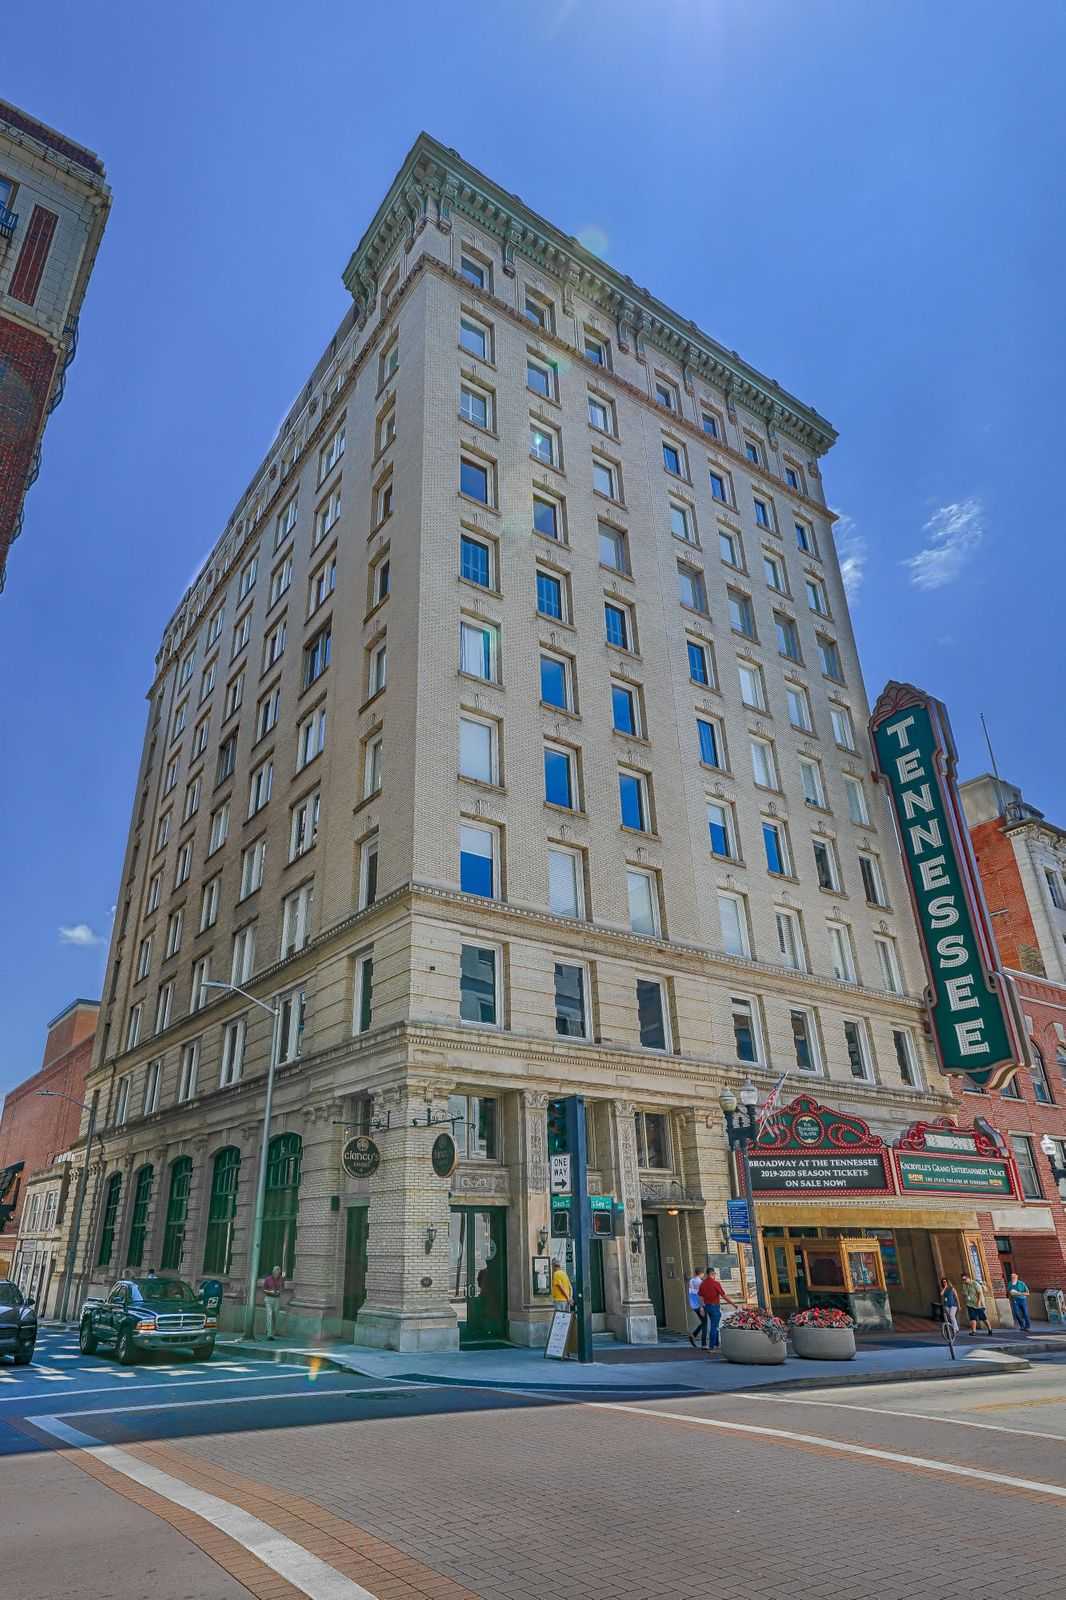 The Burwell Building